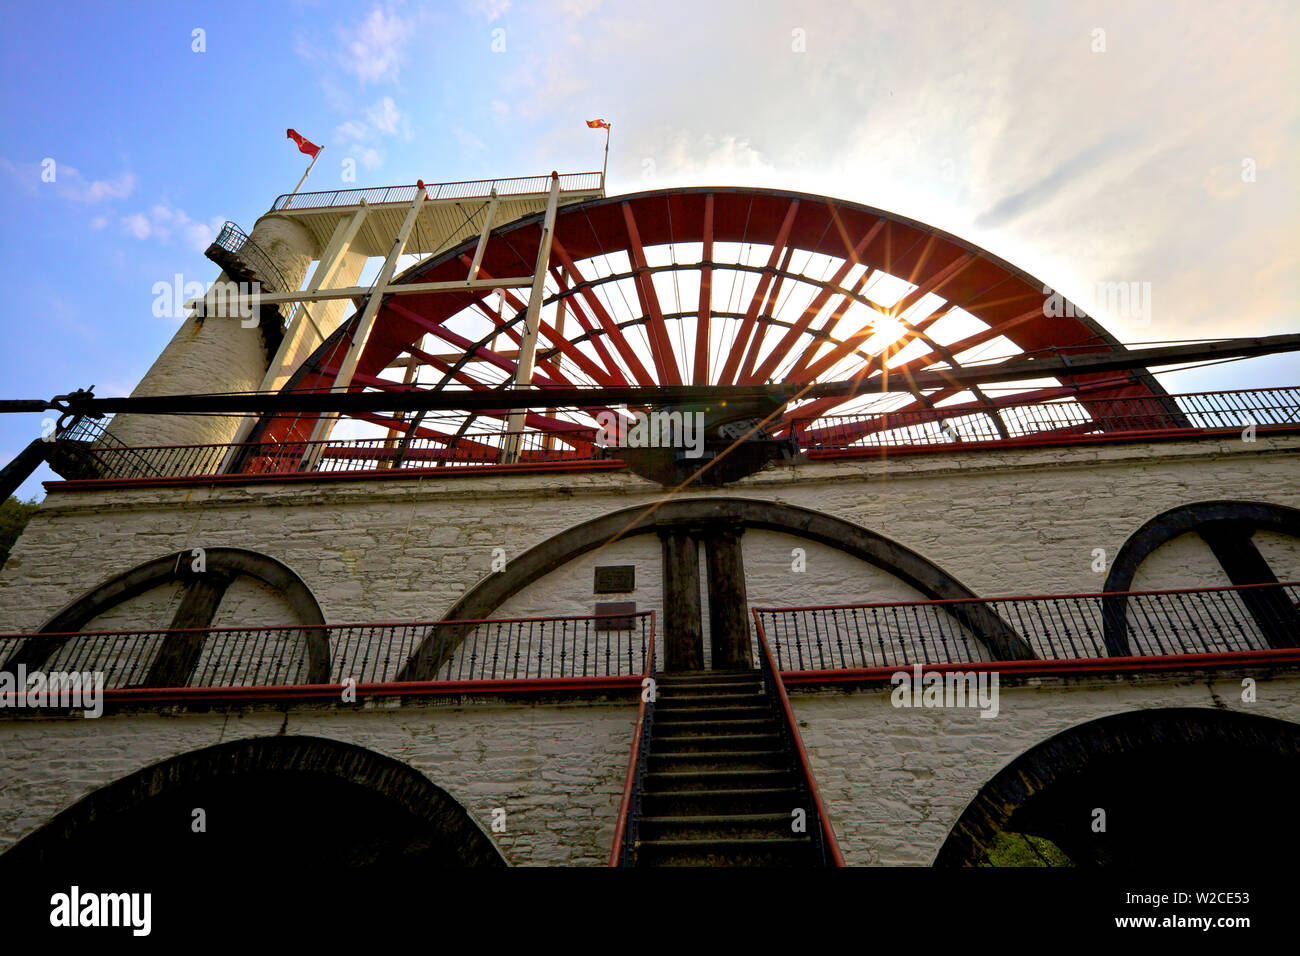 Laxey Wheel, Laxey, Isle of Man Stock Photo